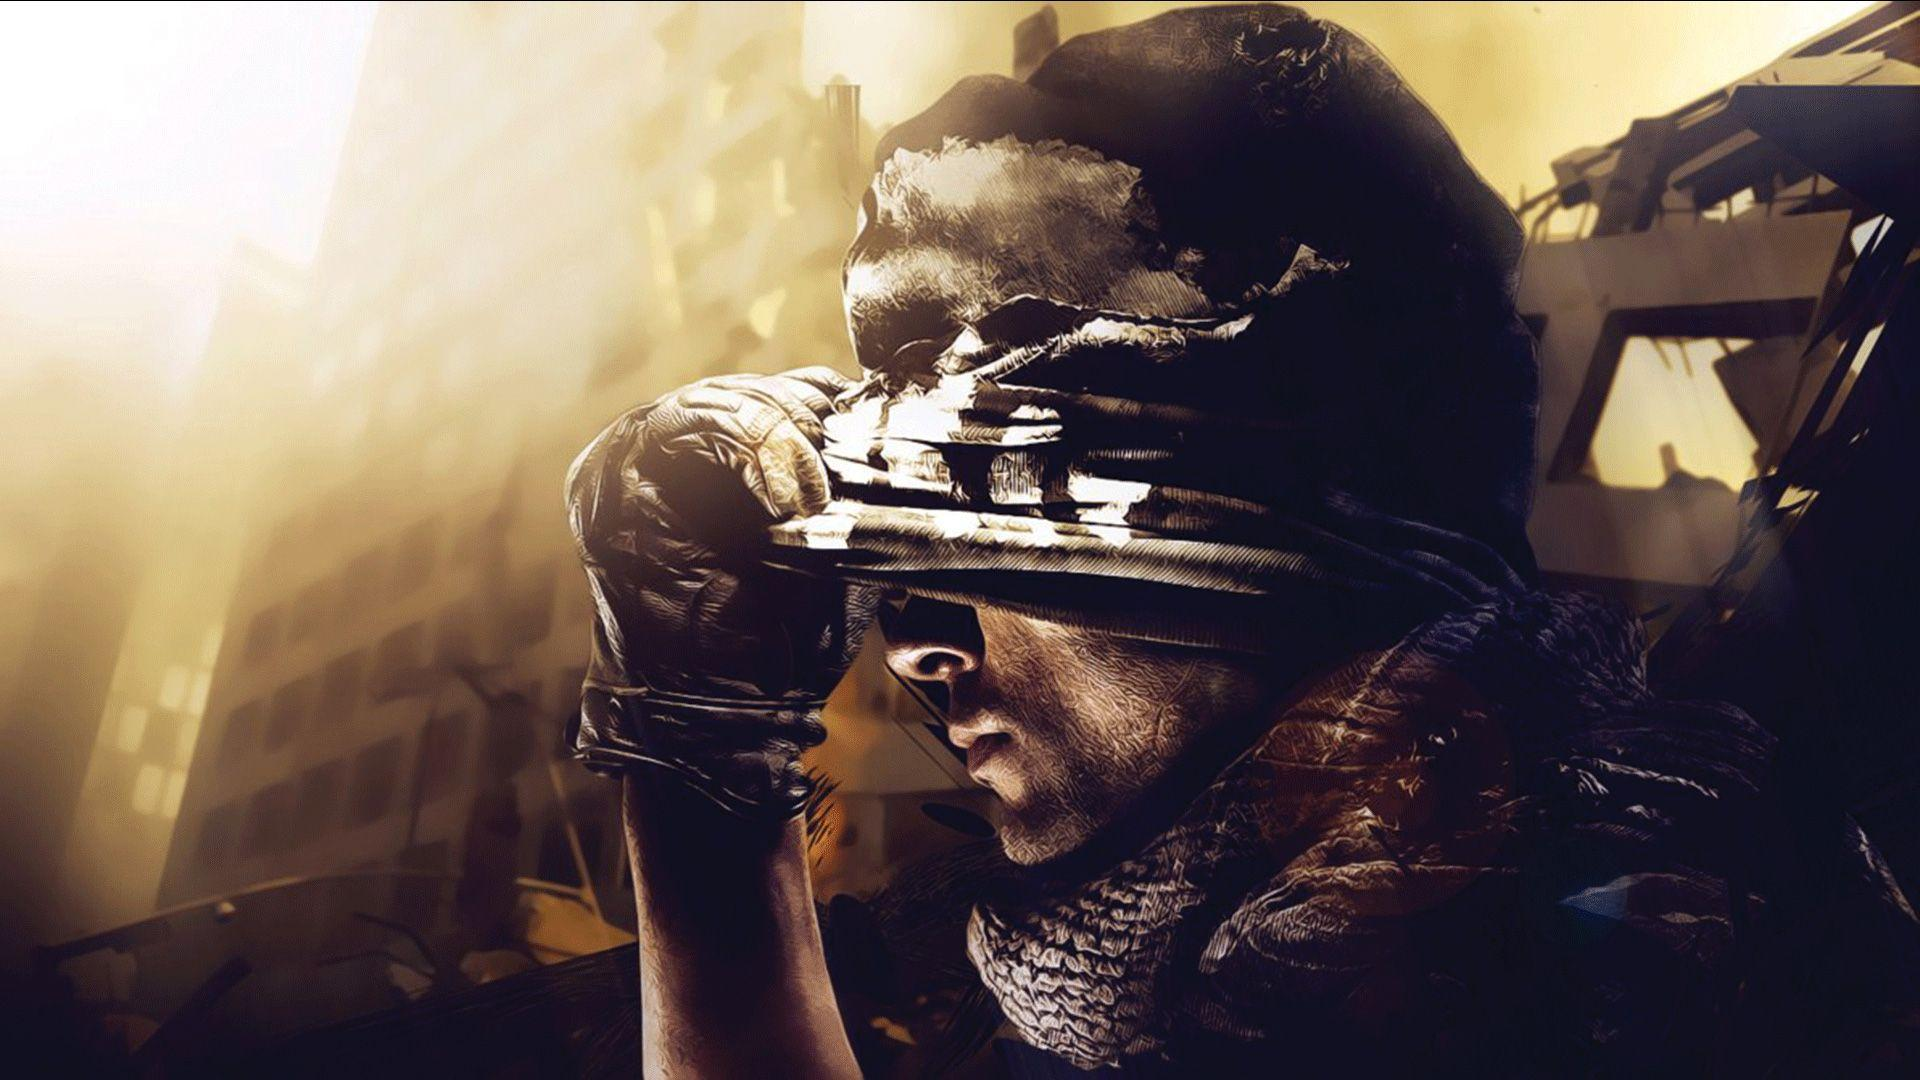 Awesome Call Of Duty Ghosts Wallpaper 20774 1920x1080 px ...